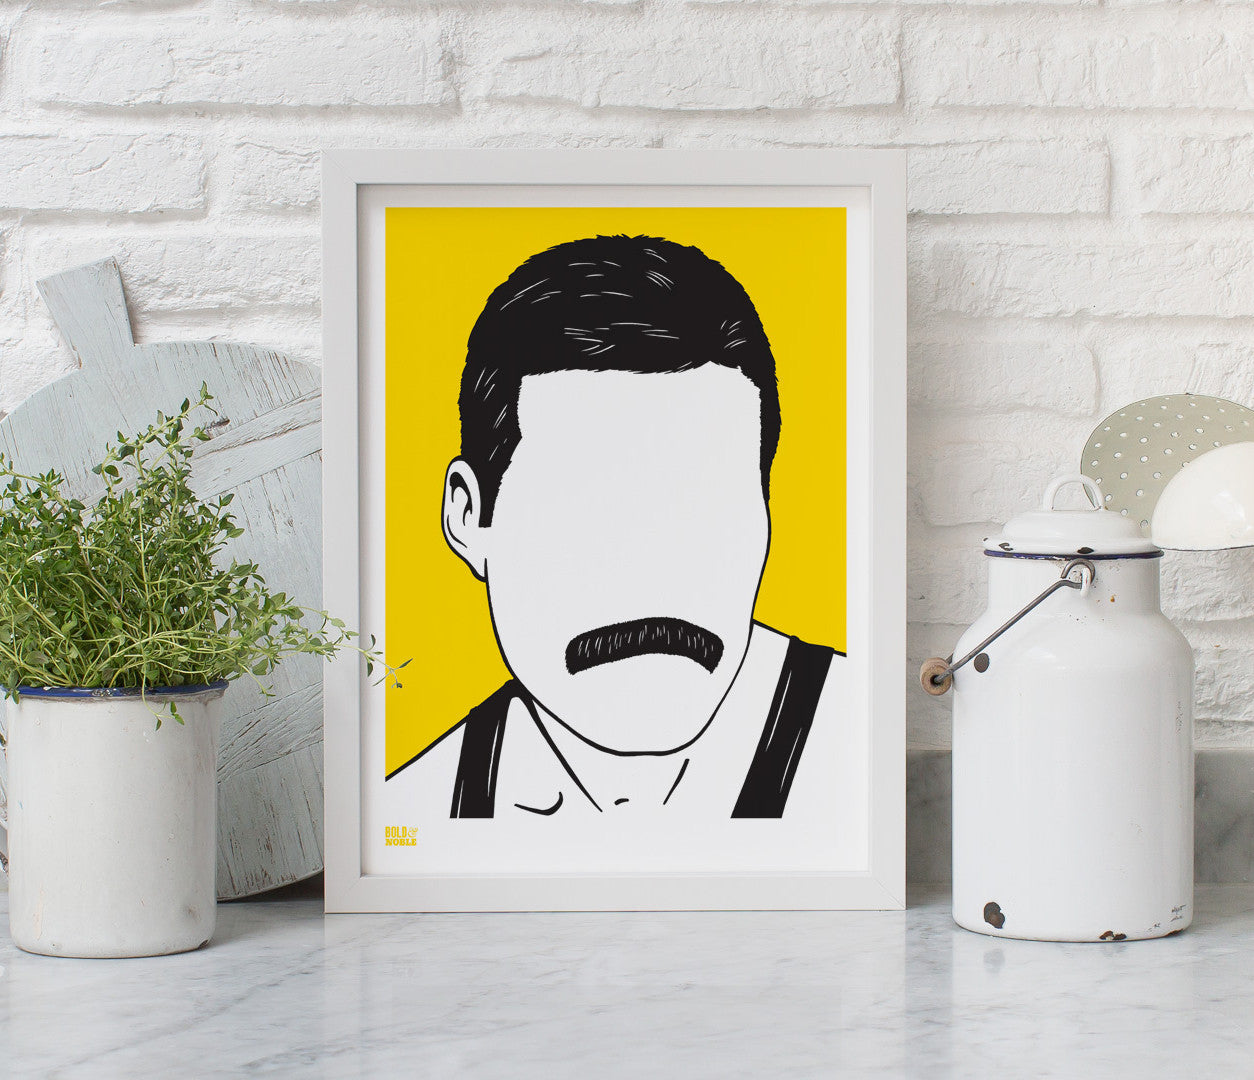 Wall Art ideas: Economical Screen Prints, Freddie Mercury print in bright yellow